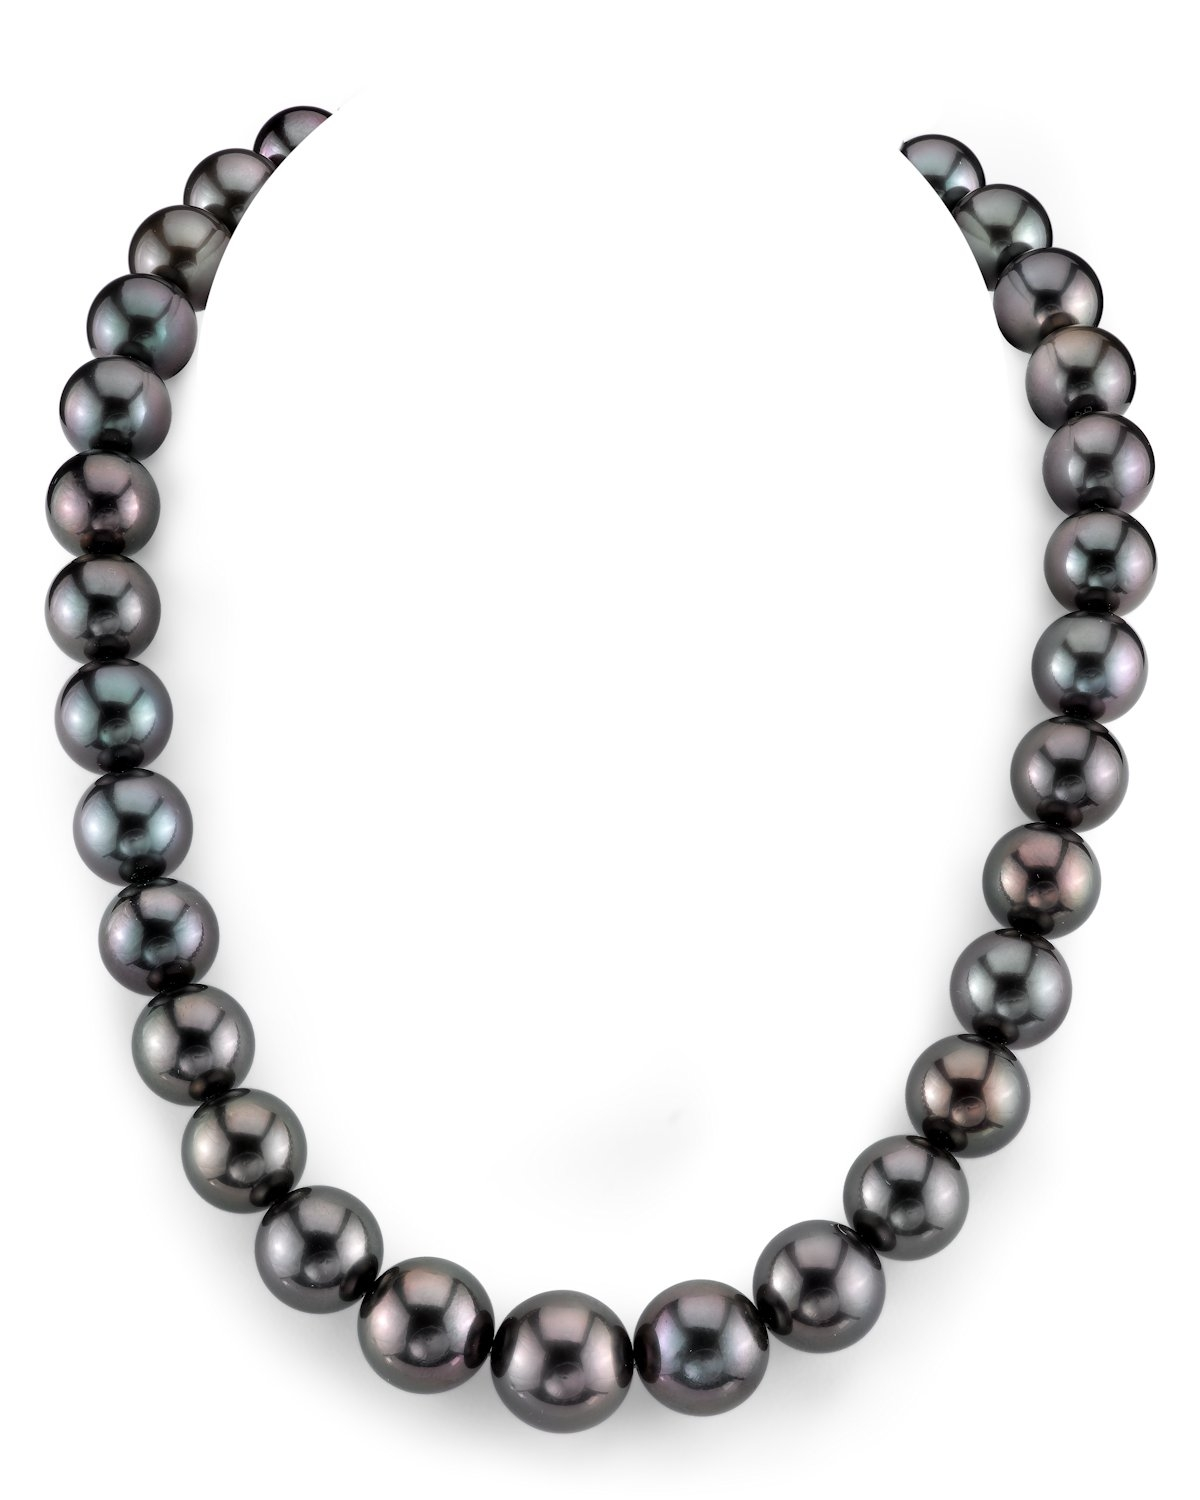 12-15mm Tahitian South Sea Pearl Necklace - AAAA Quality